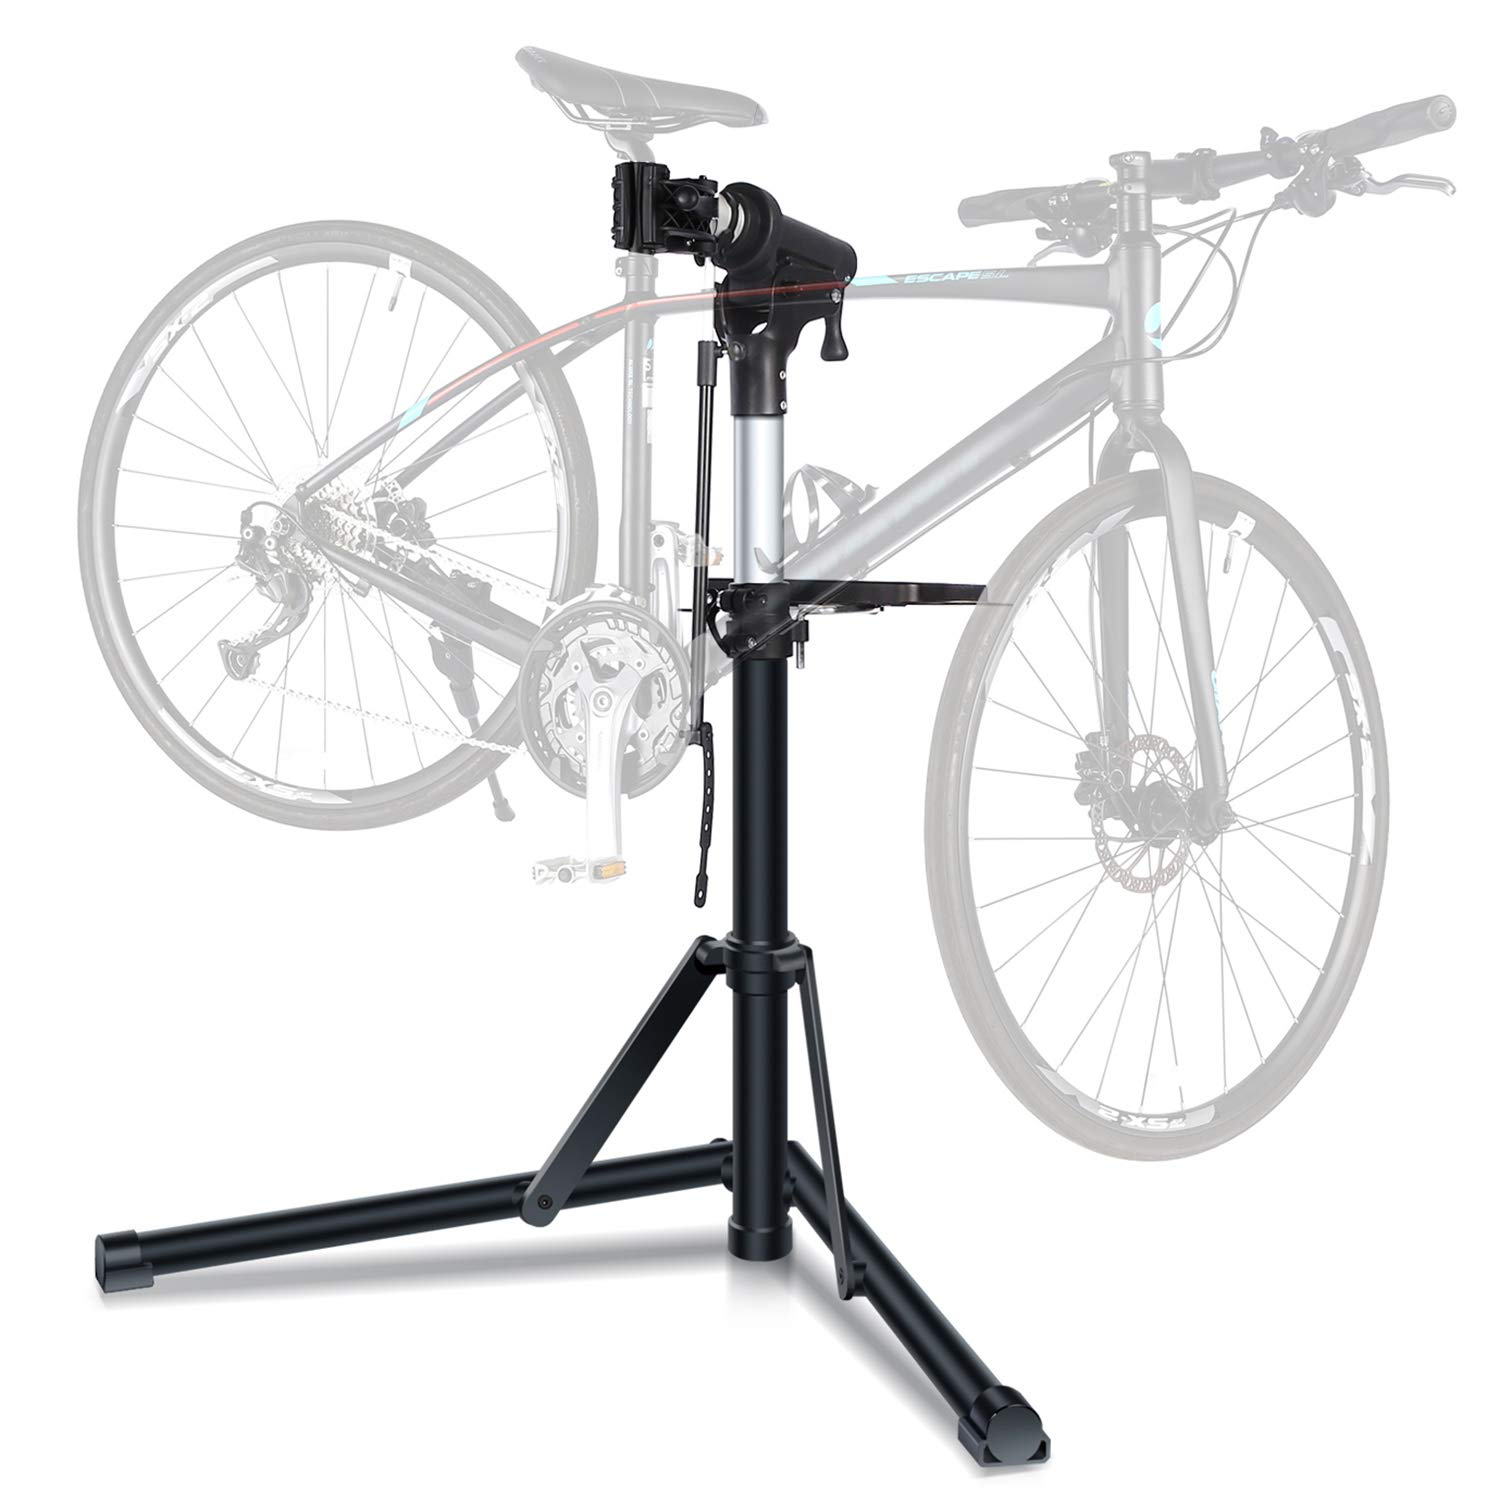 Sportneer Bike Repair Stand, Foldable Bicycle Repair Rack Workstand, Height Adjustable